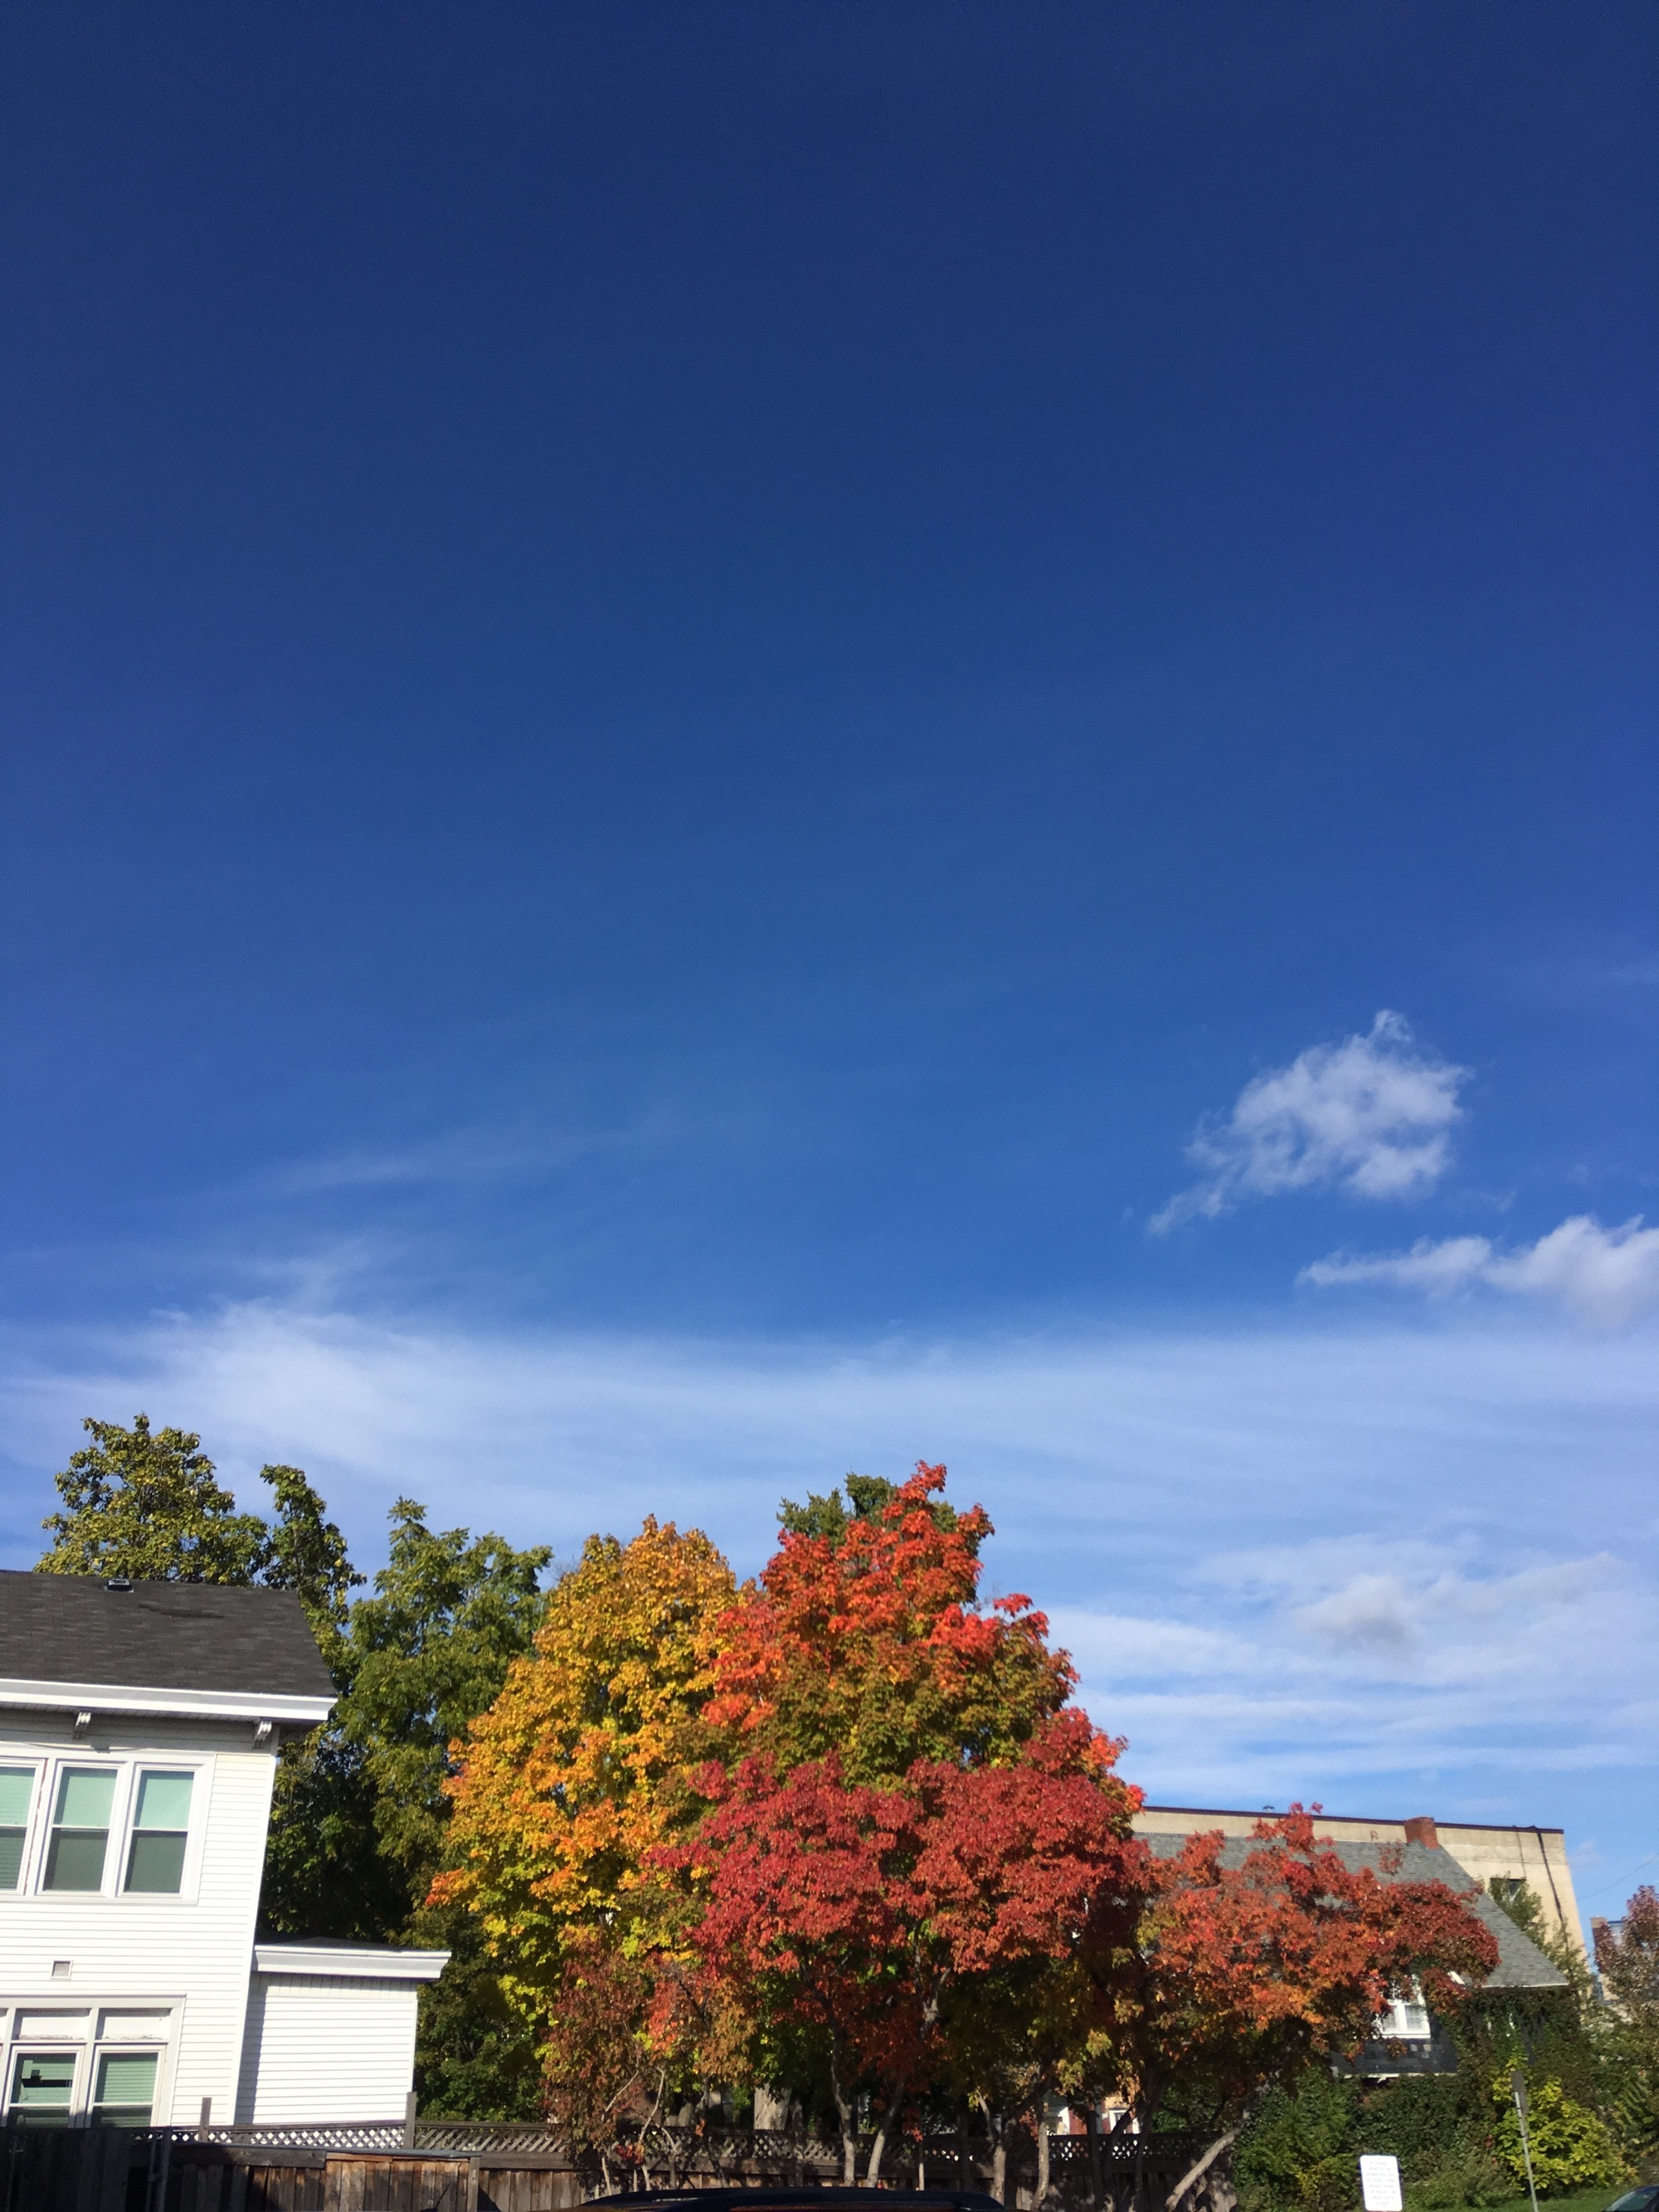 autumn leaves changing color beneath a sharp blue sky